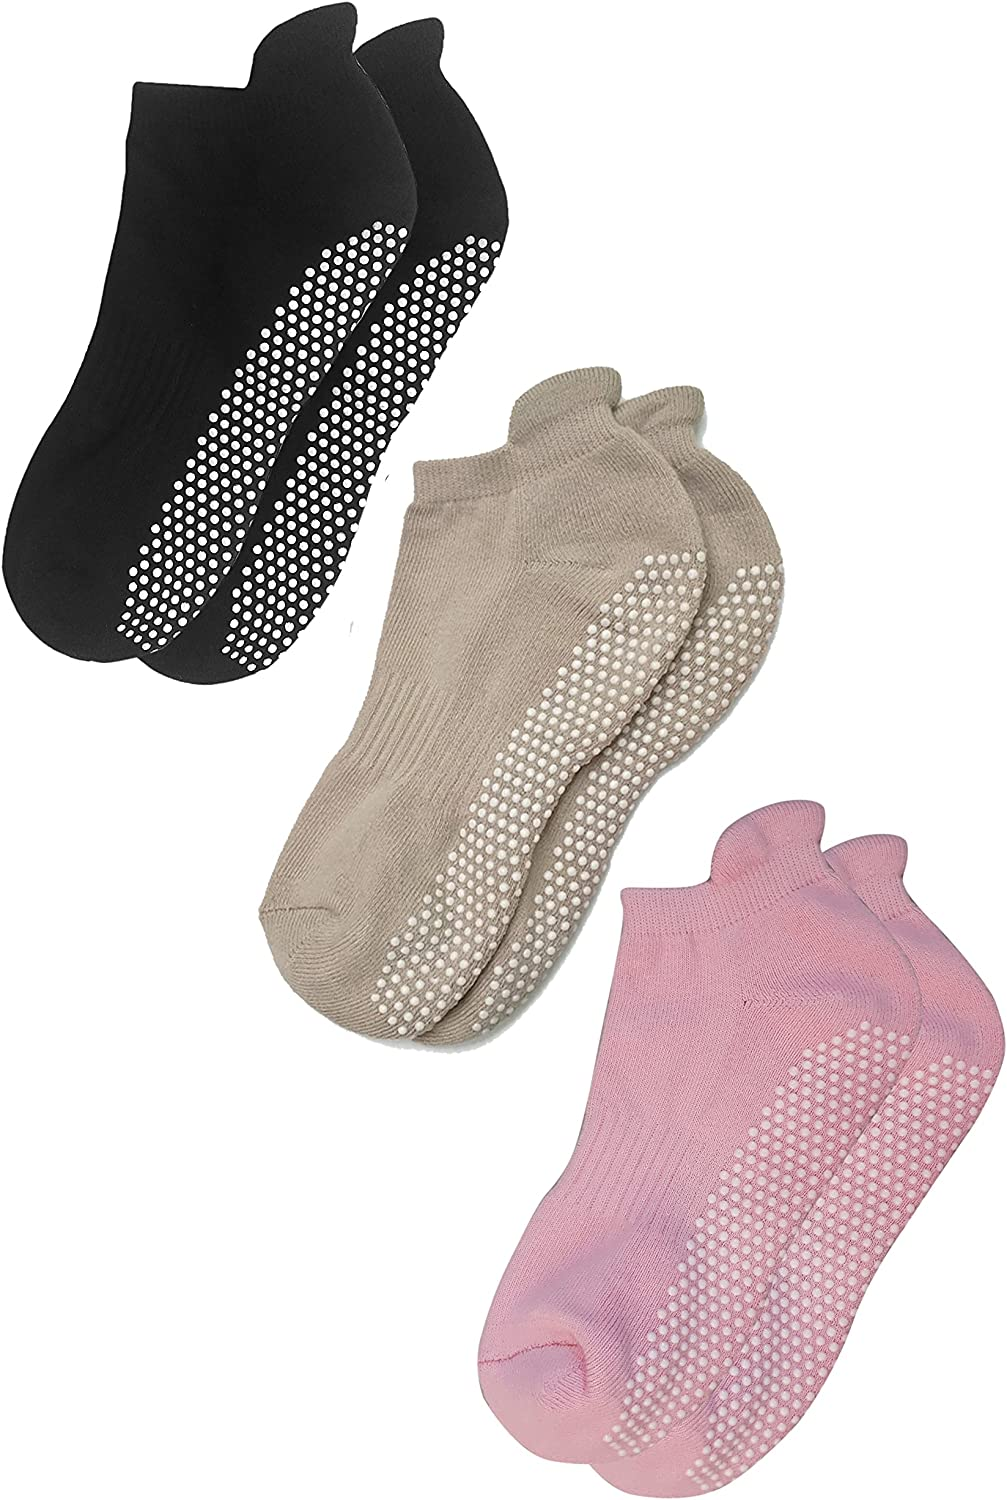 RATIVE Anti Slip Non Skid Barre Yoga Pilates Hospital Socks with grips for Adults Men Women